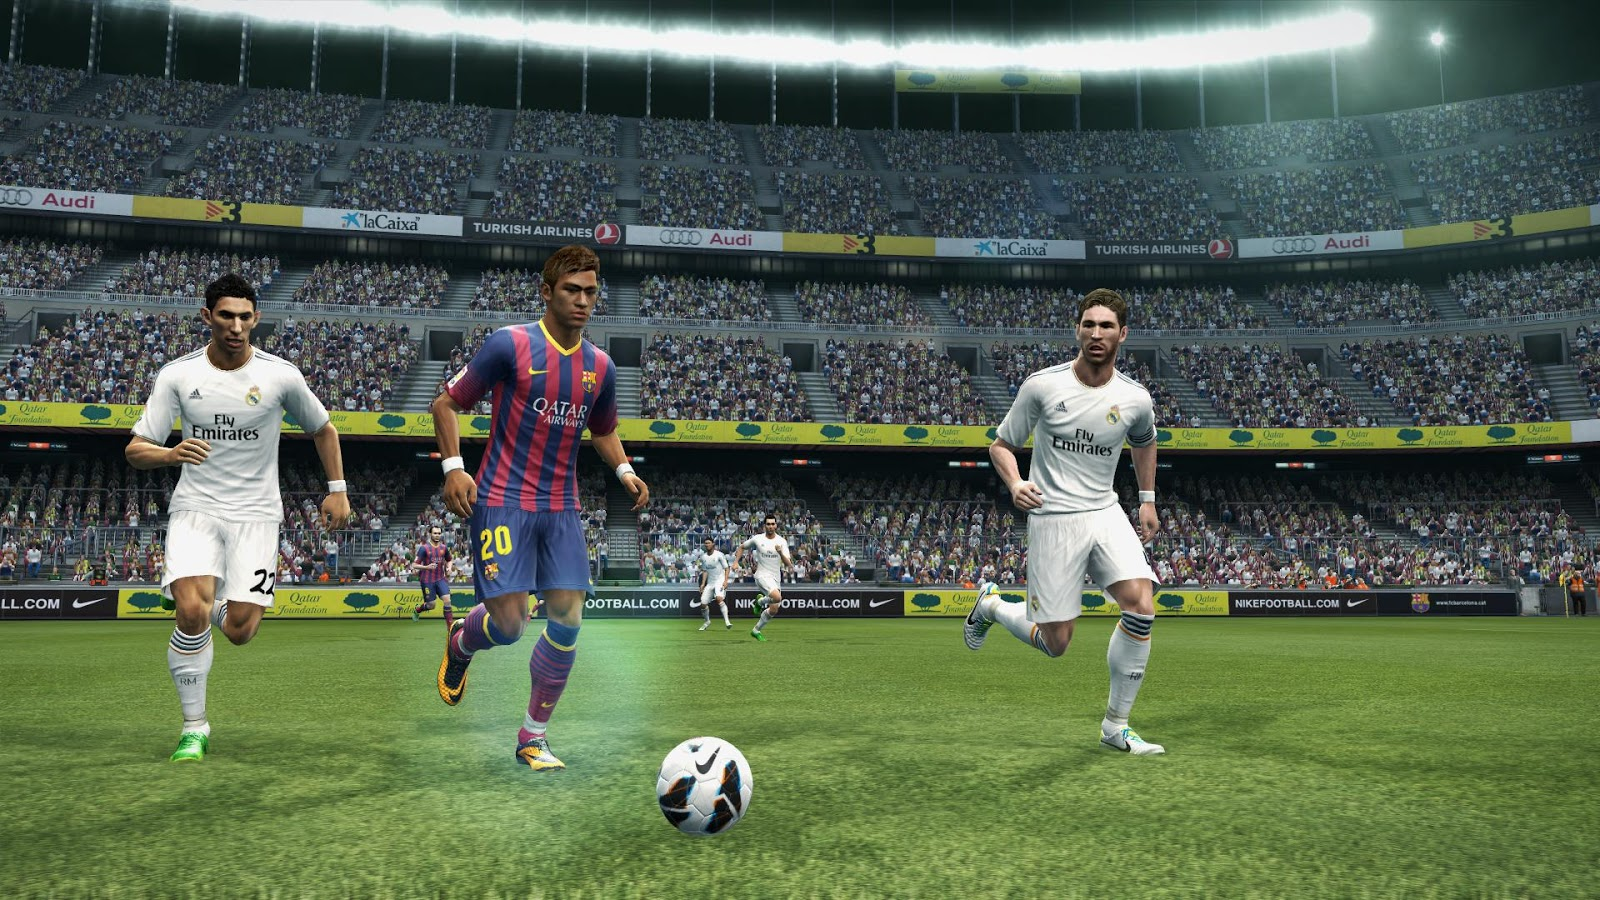 Download PESEDIT.com PES 2013 Patch 4.0 + 4.01 Terbaru